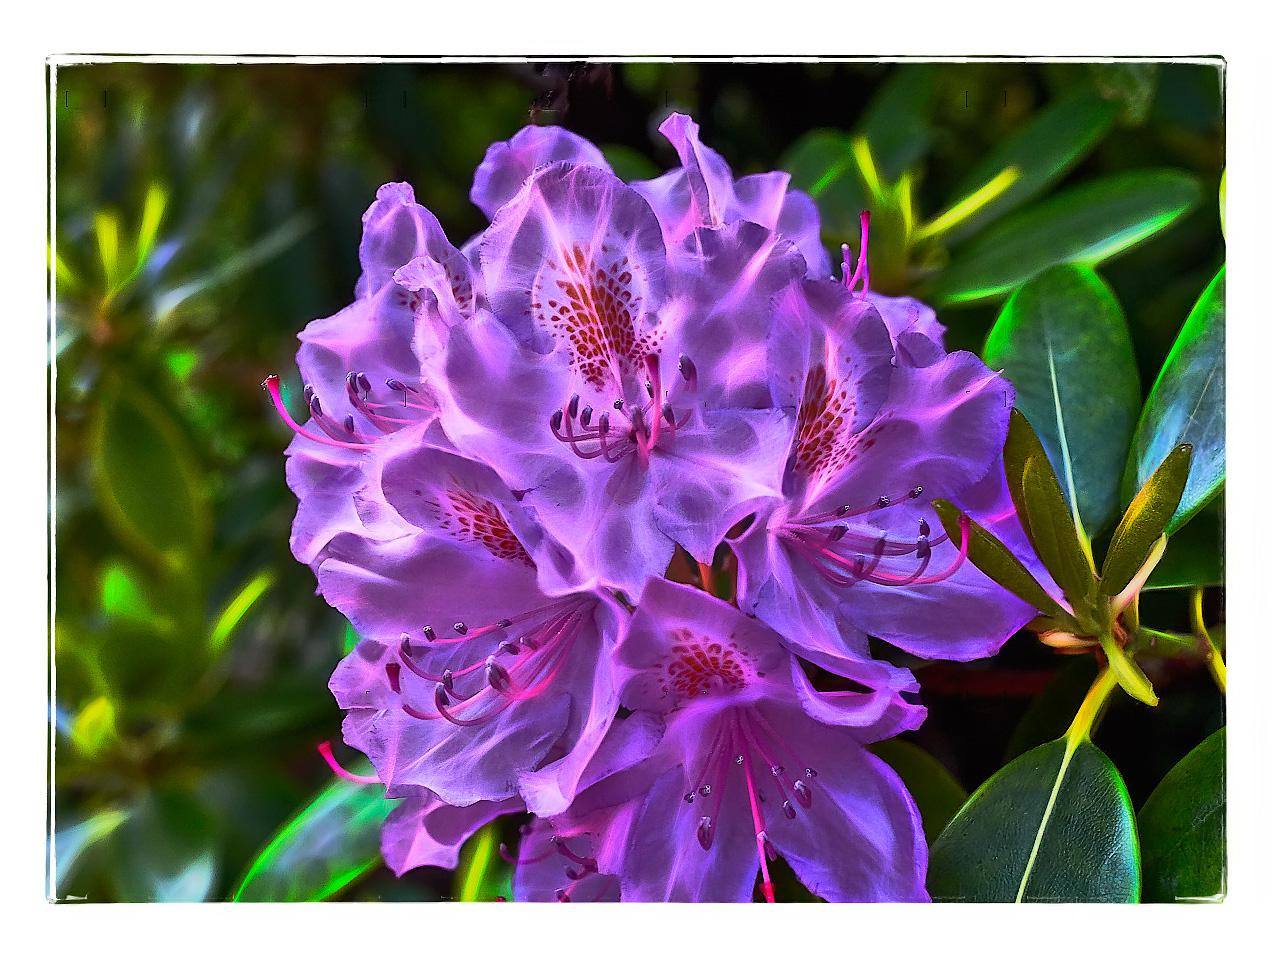 Rhododendron mal anders